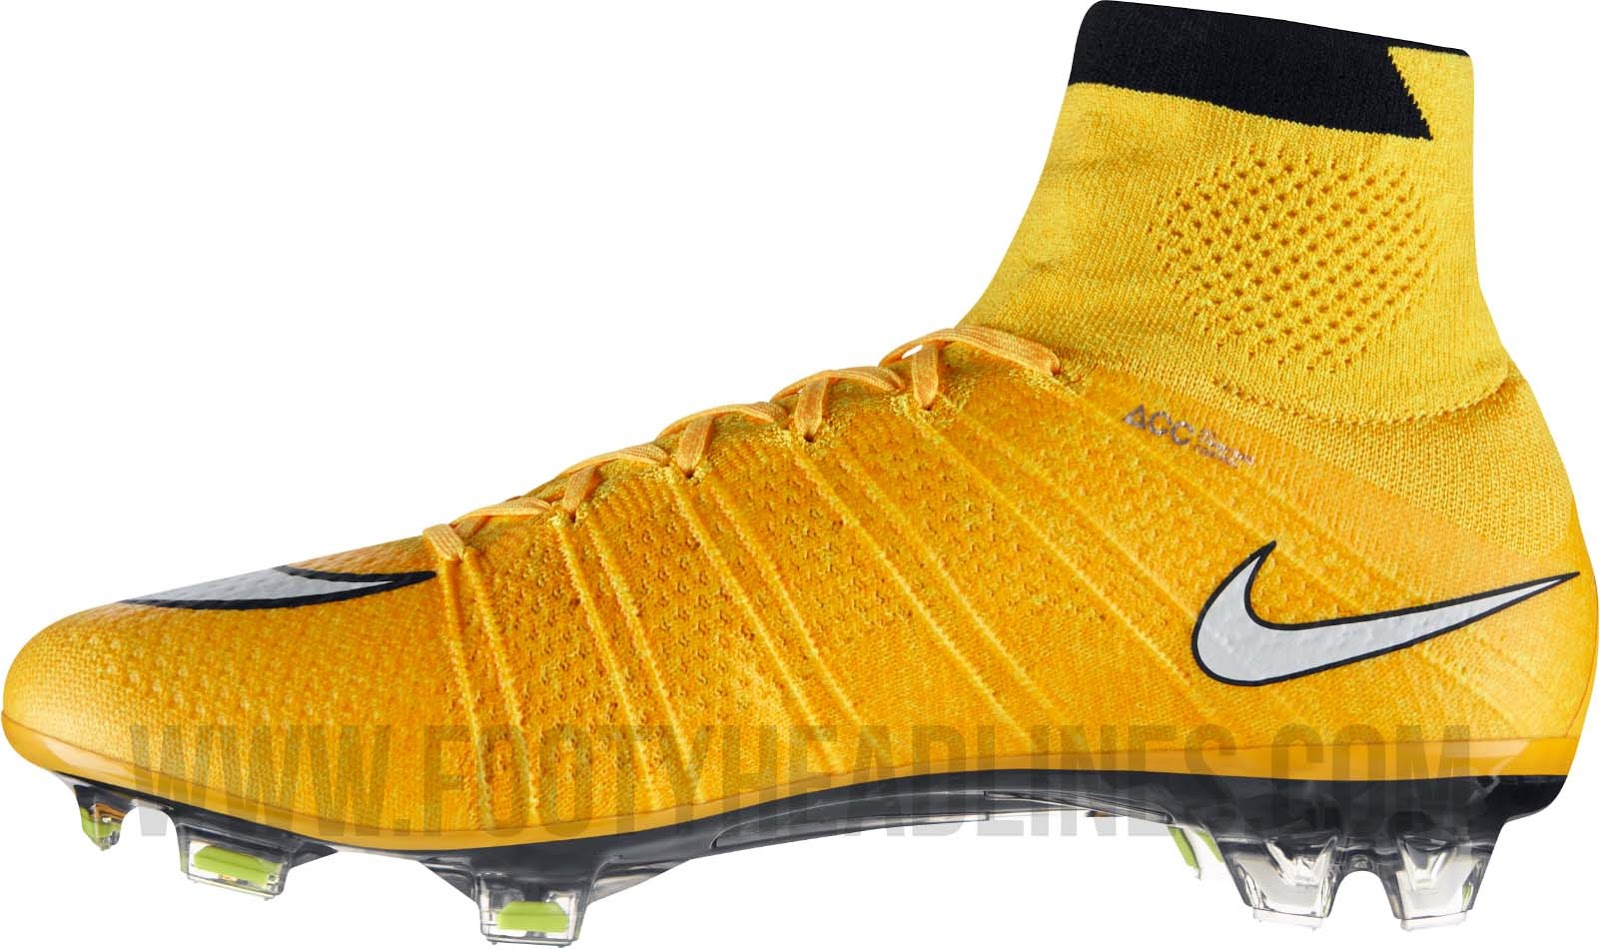 Cr7 Voetbalschoenen Nike Mercurial Superfly Iv Laser Orange White Black Volt